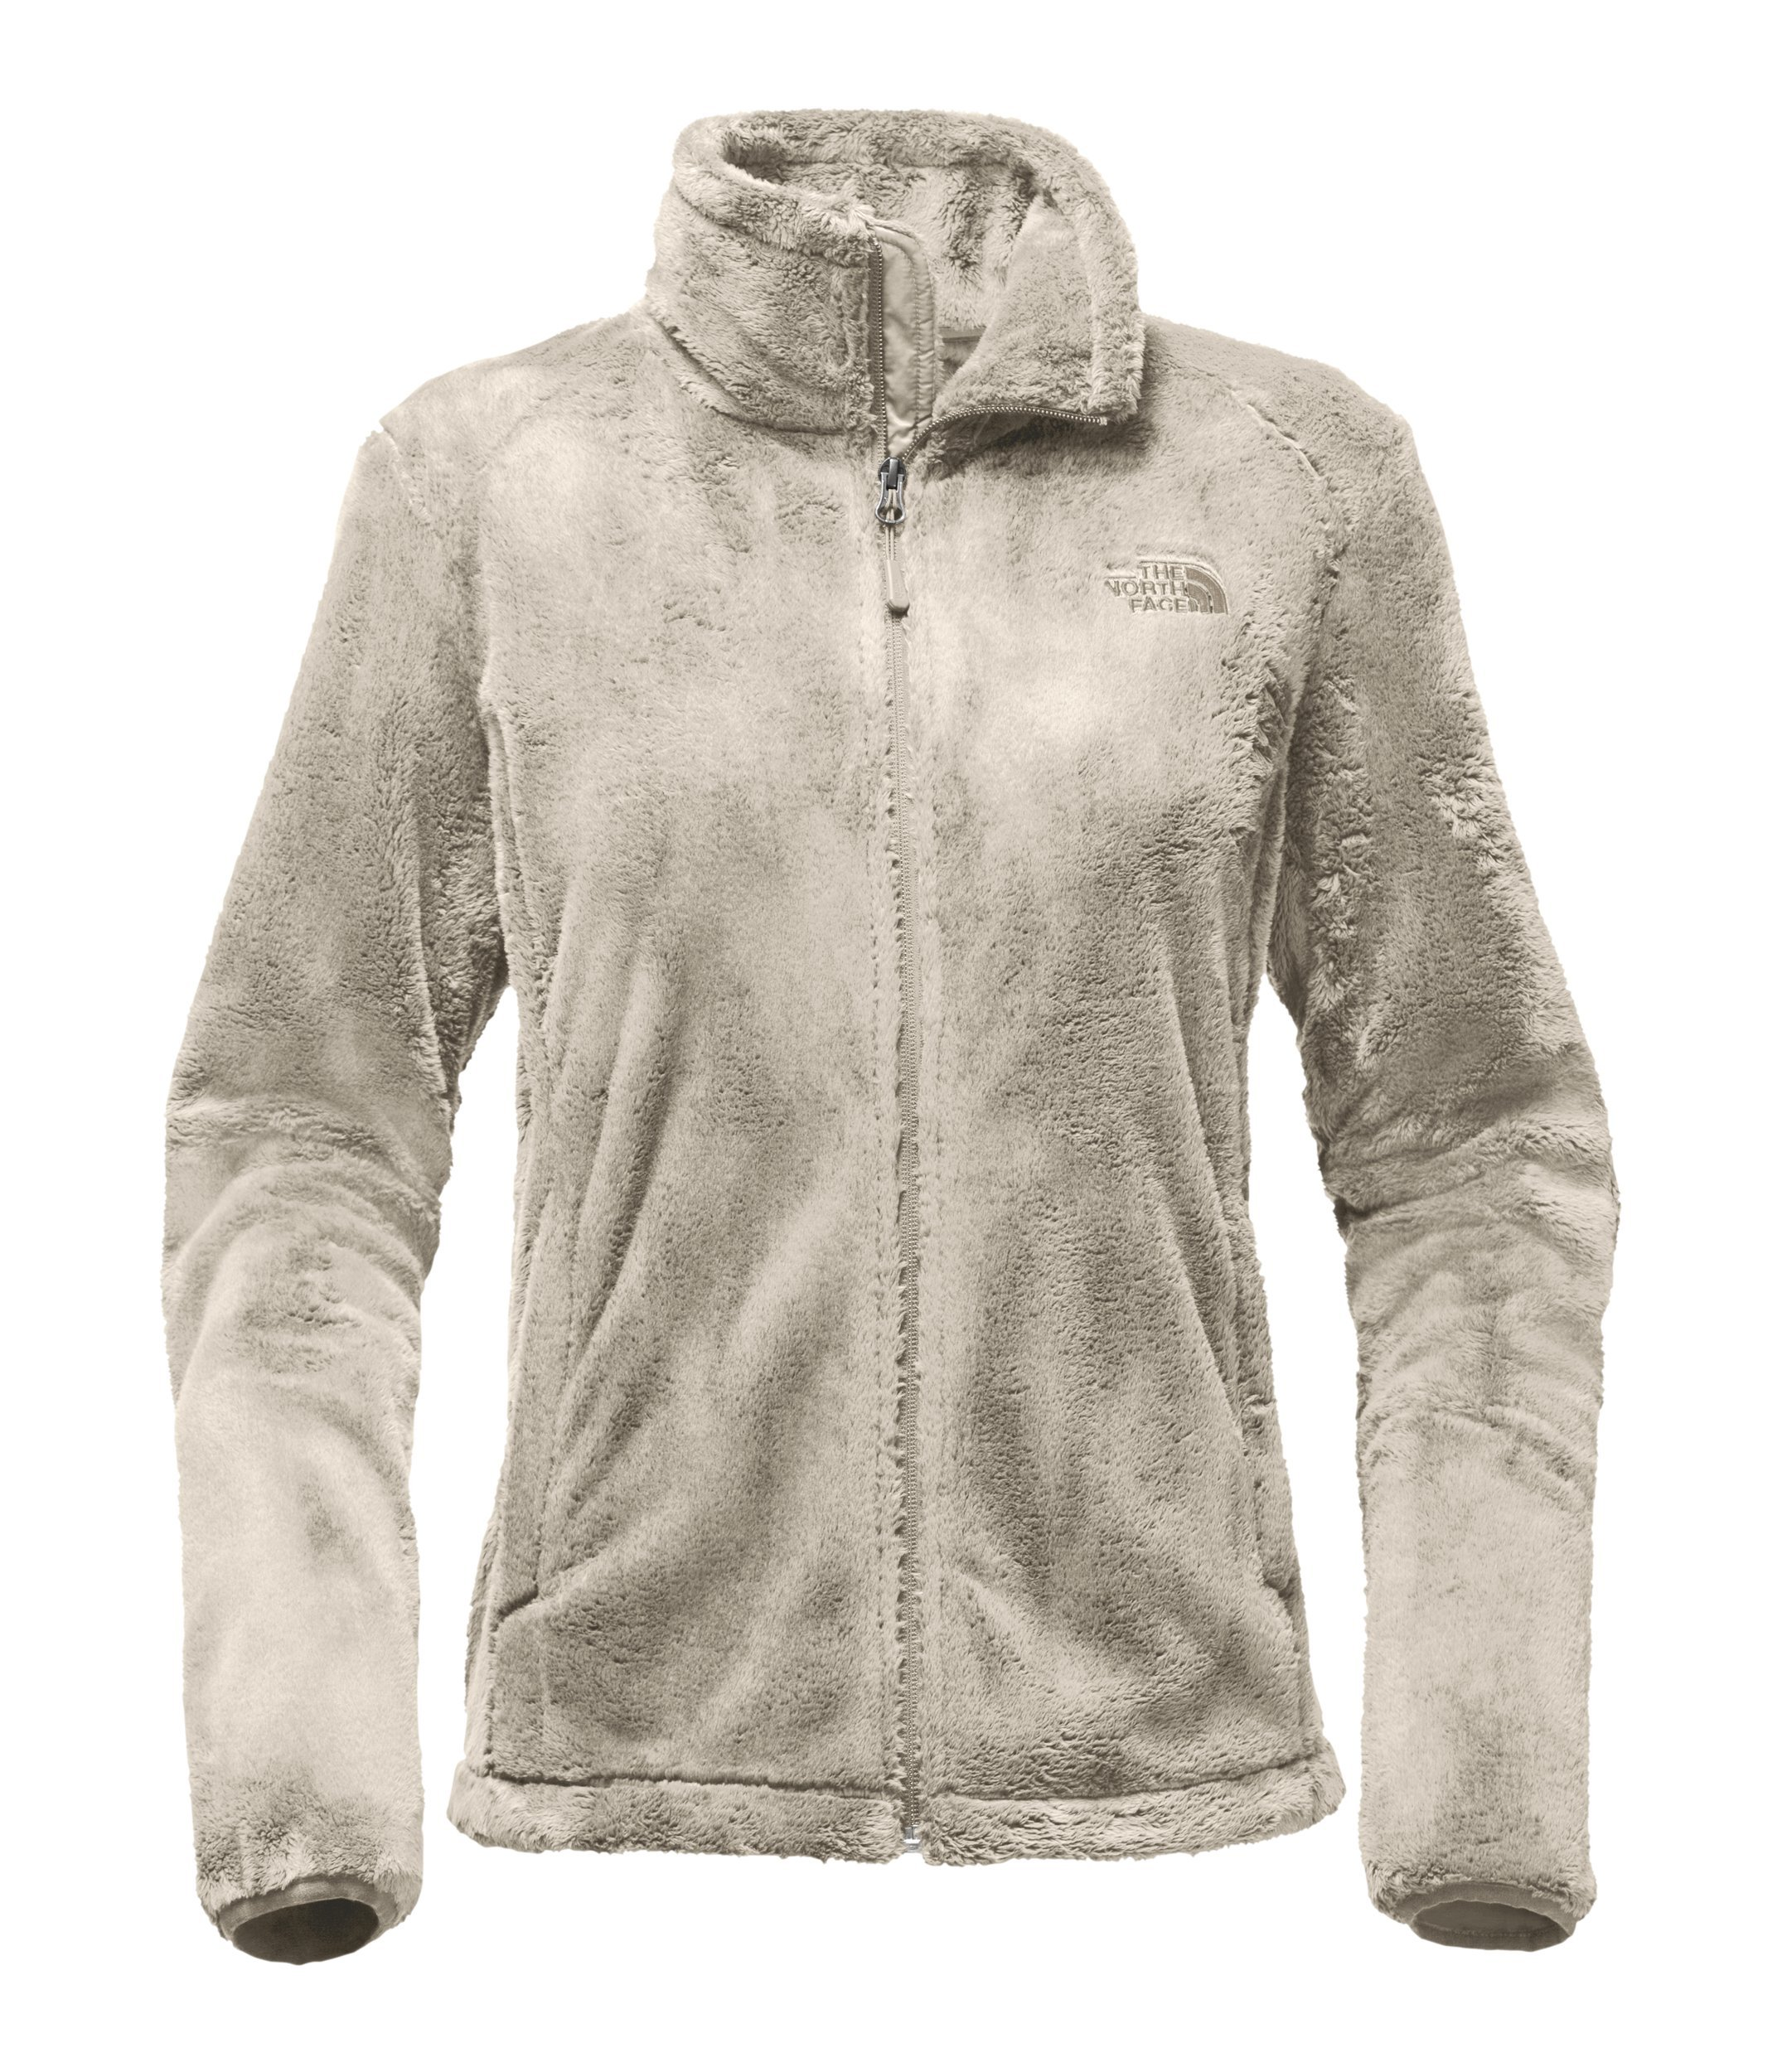 The North Face Women's Osito 2 Jacket - Peyote Beige - M